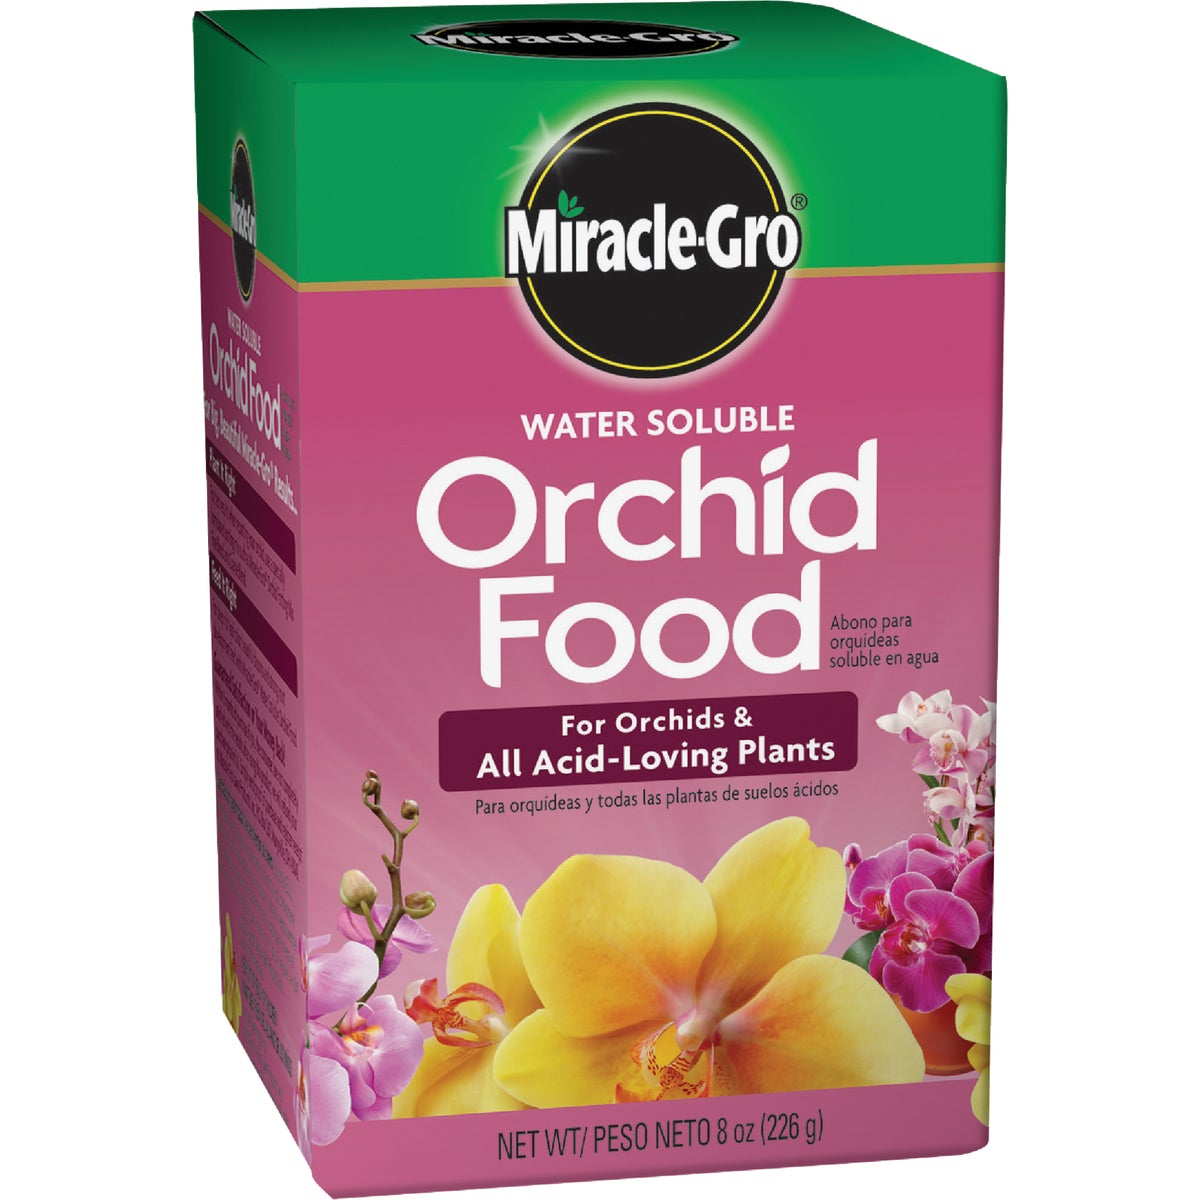 8OZ ORCHID FOOD - 1001991 by Scotts Company